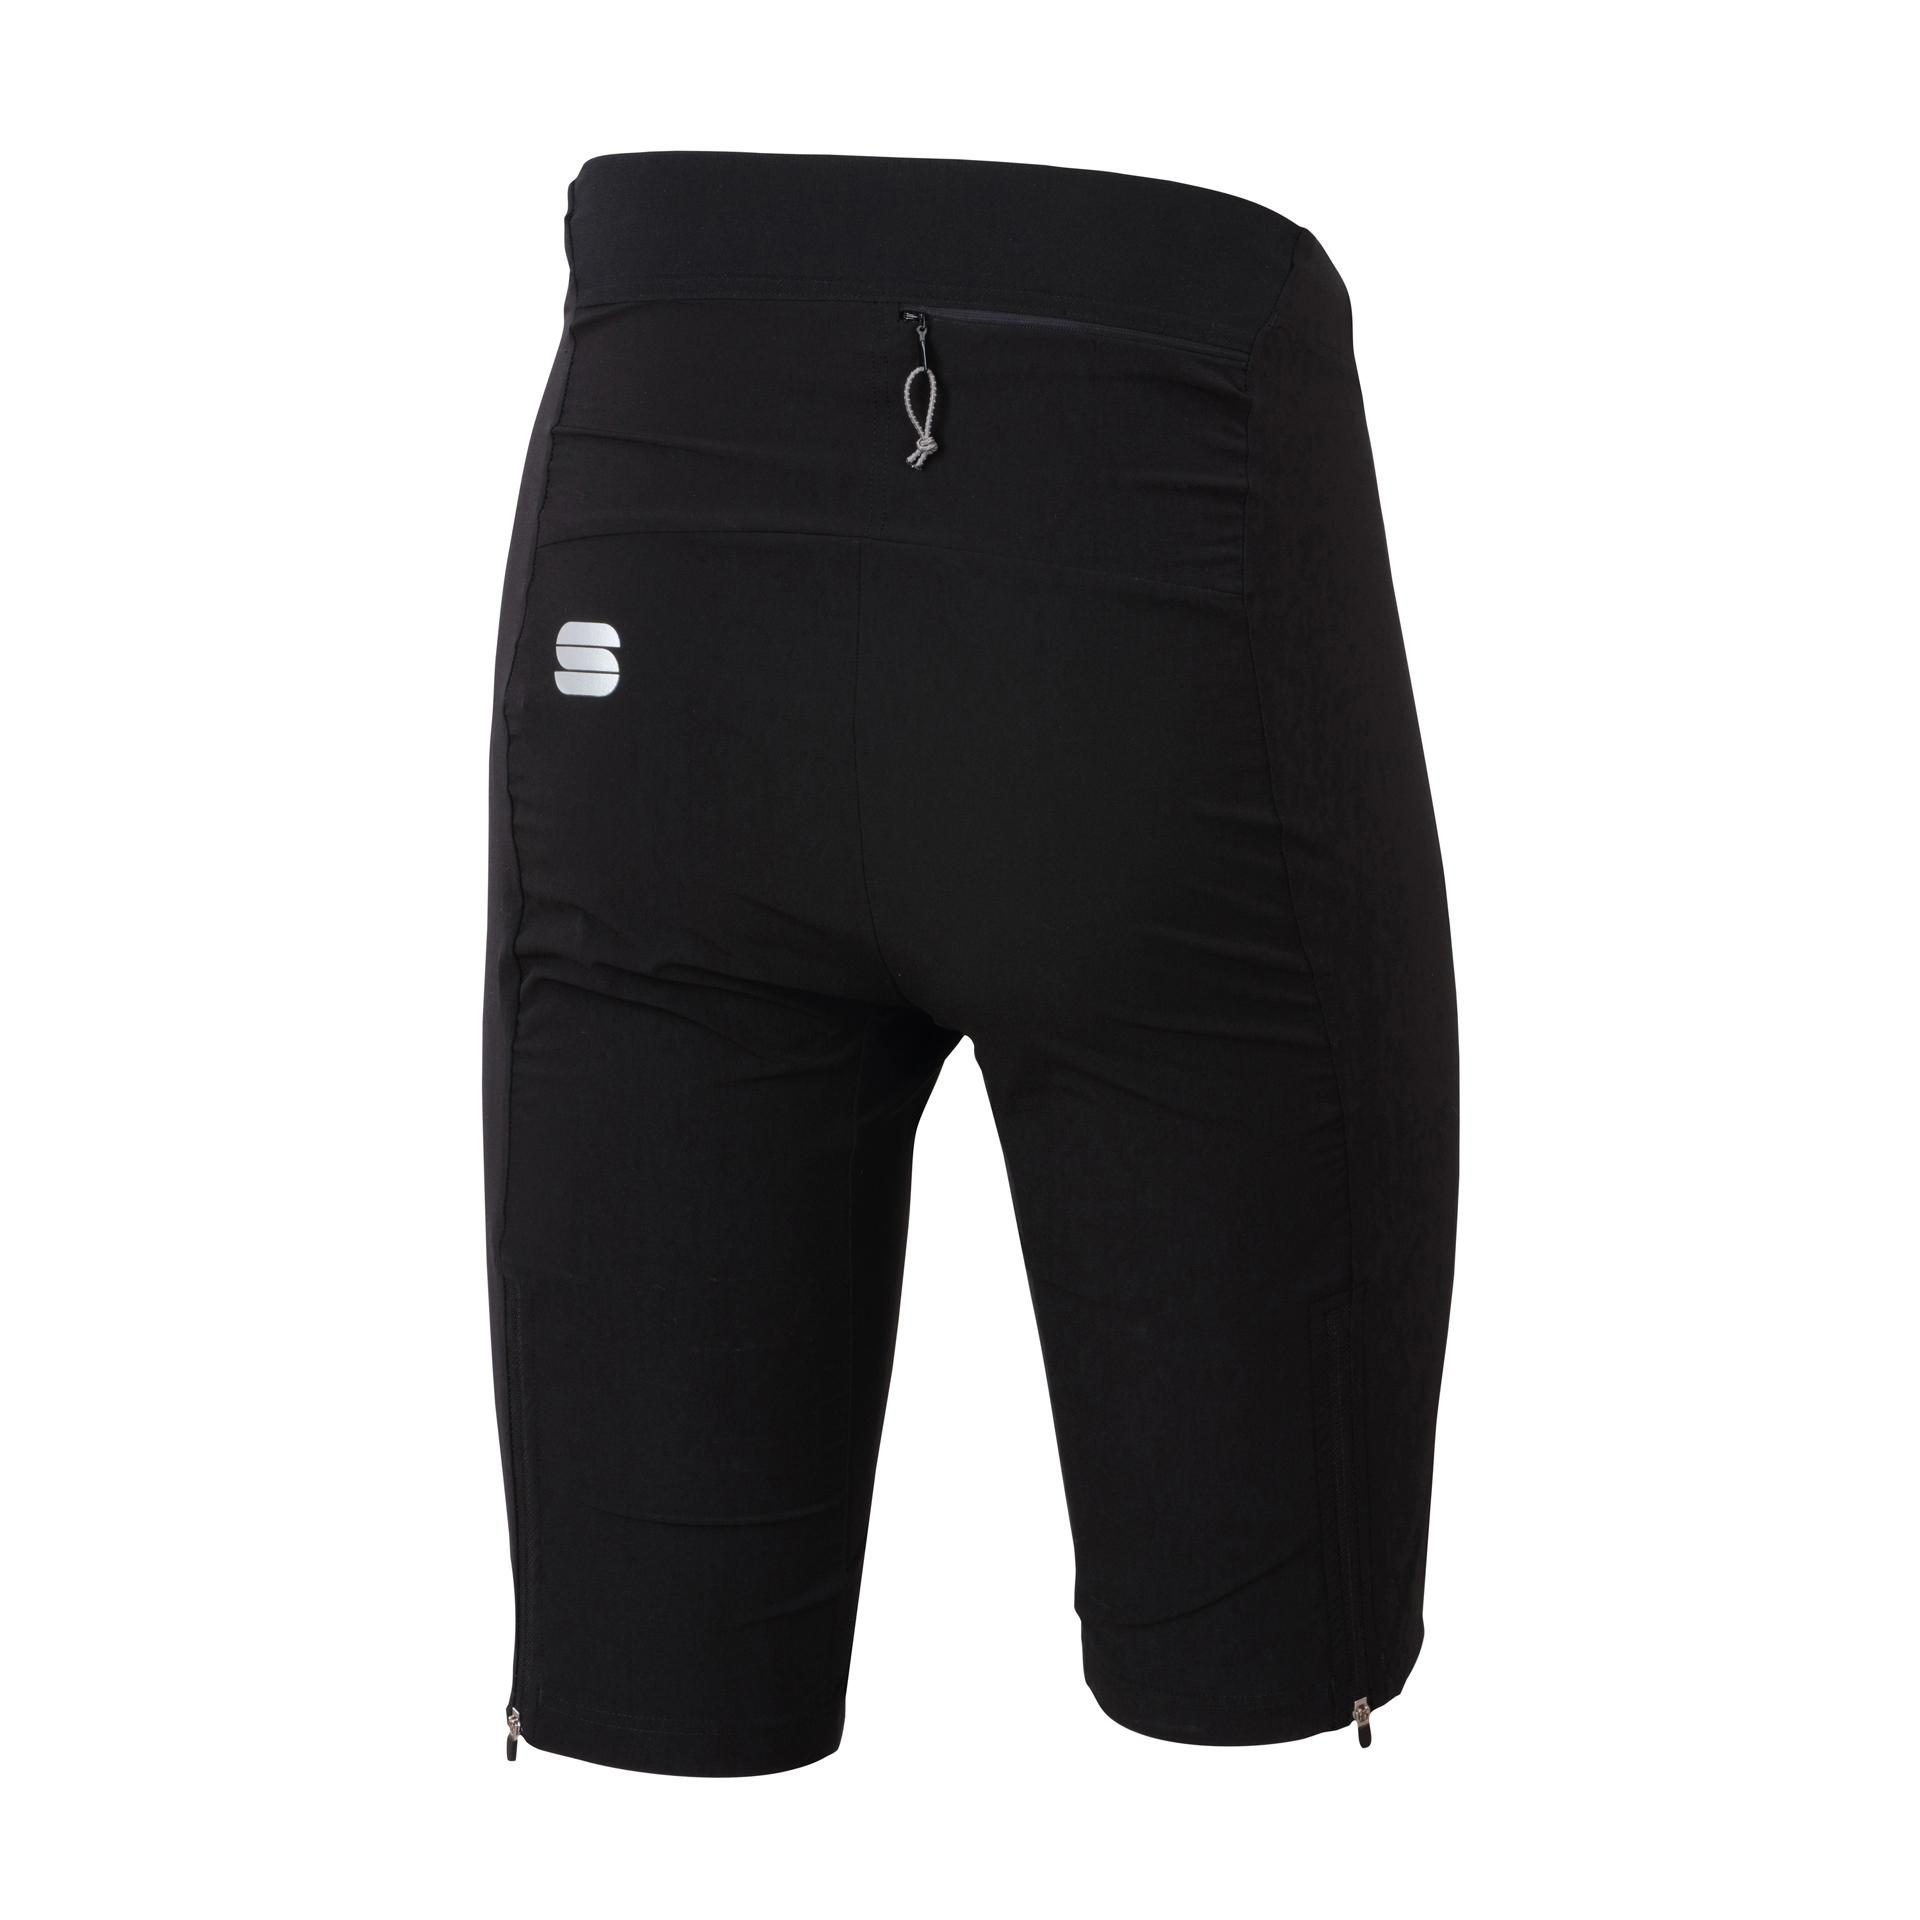 Sportful Fietsbroek zonder bretels Heren Zwart  / SF Performance Over Short-Black